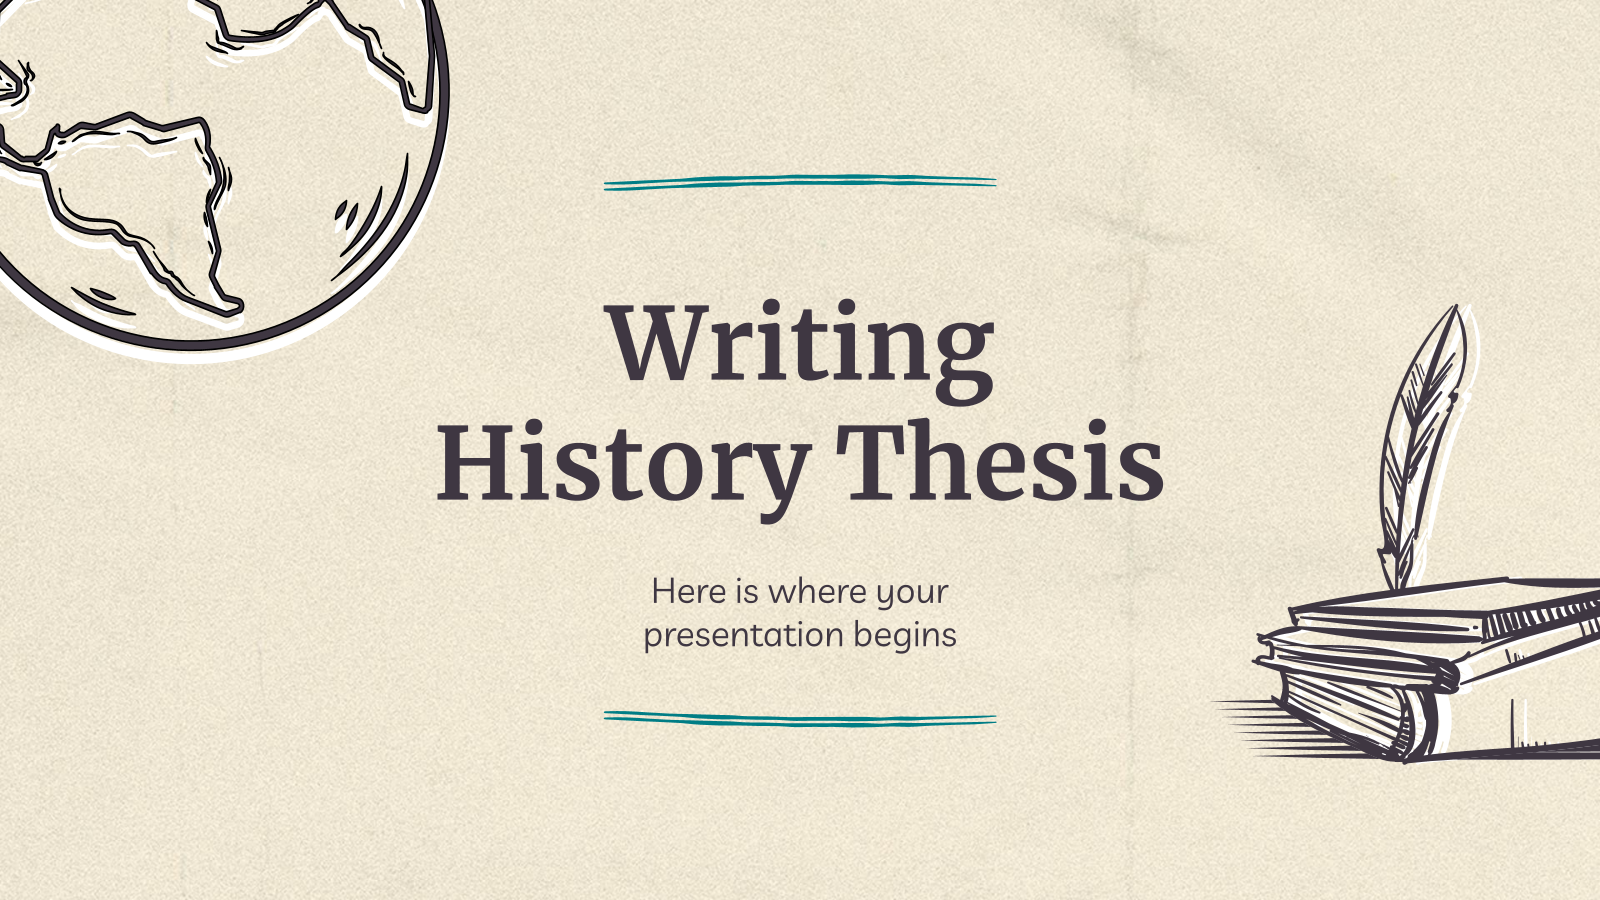 Writing History Thesis presentation template